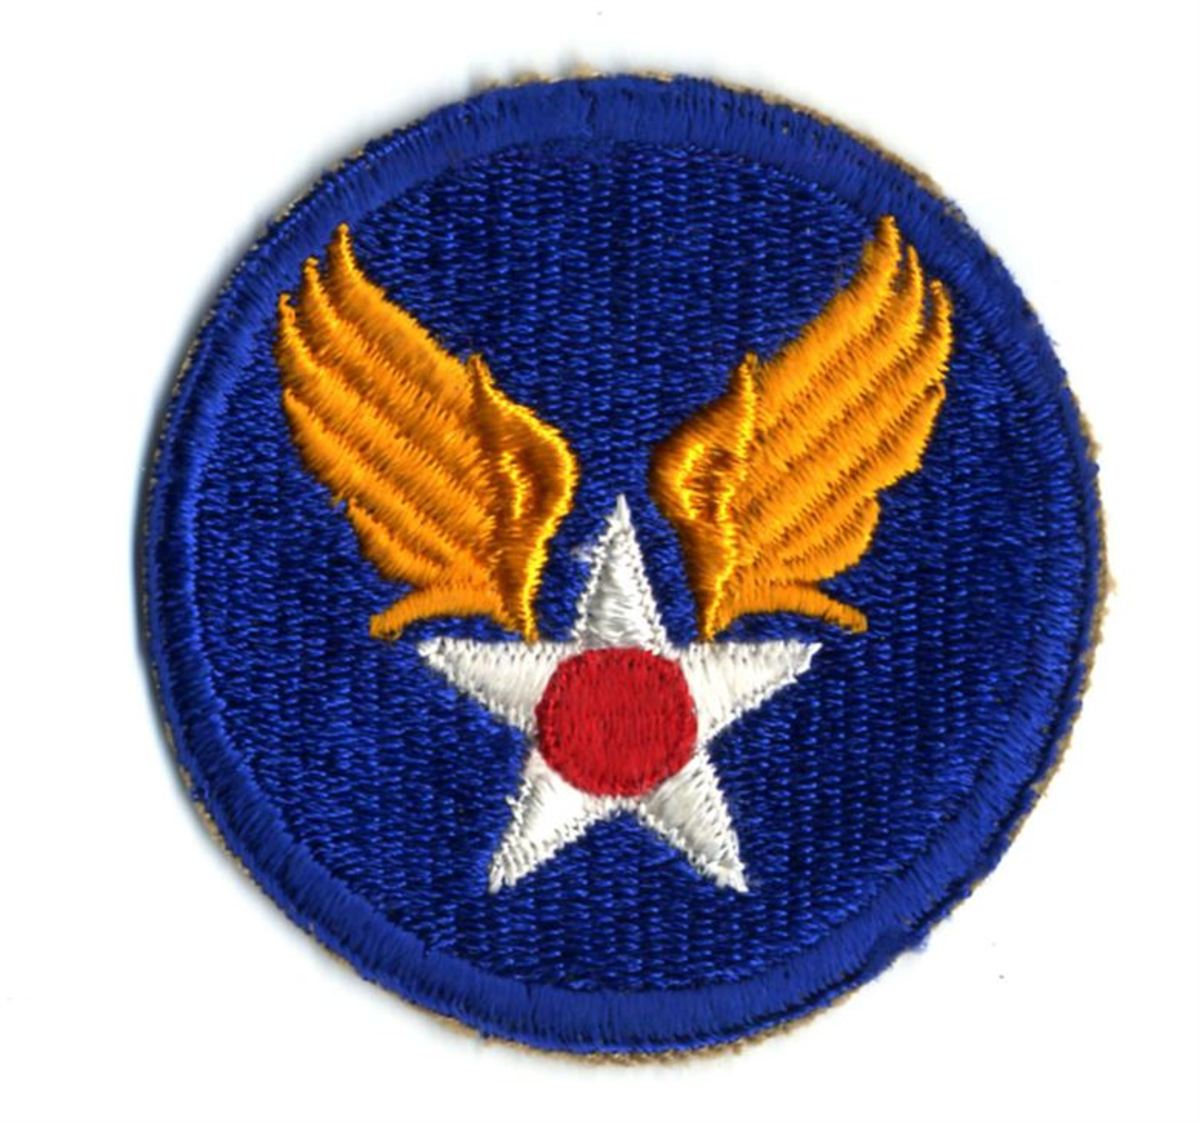 Shoulder sleeve insignia of the Army Air Forces (World War II).